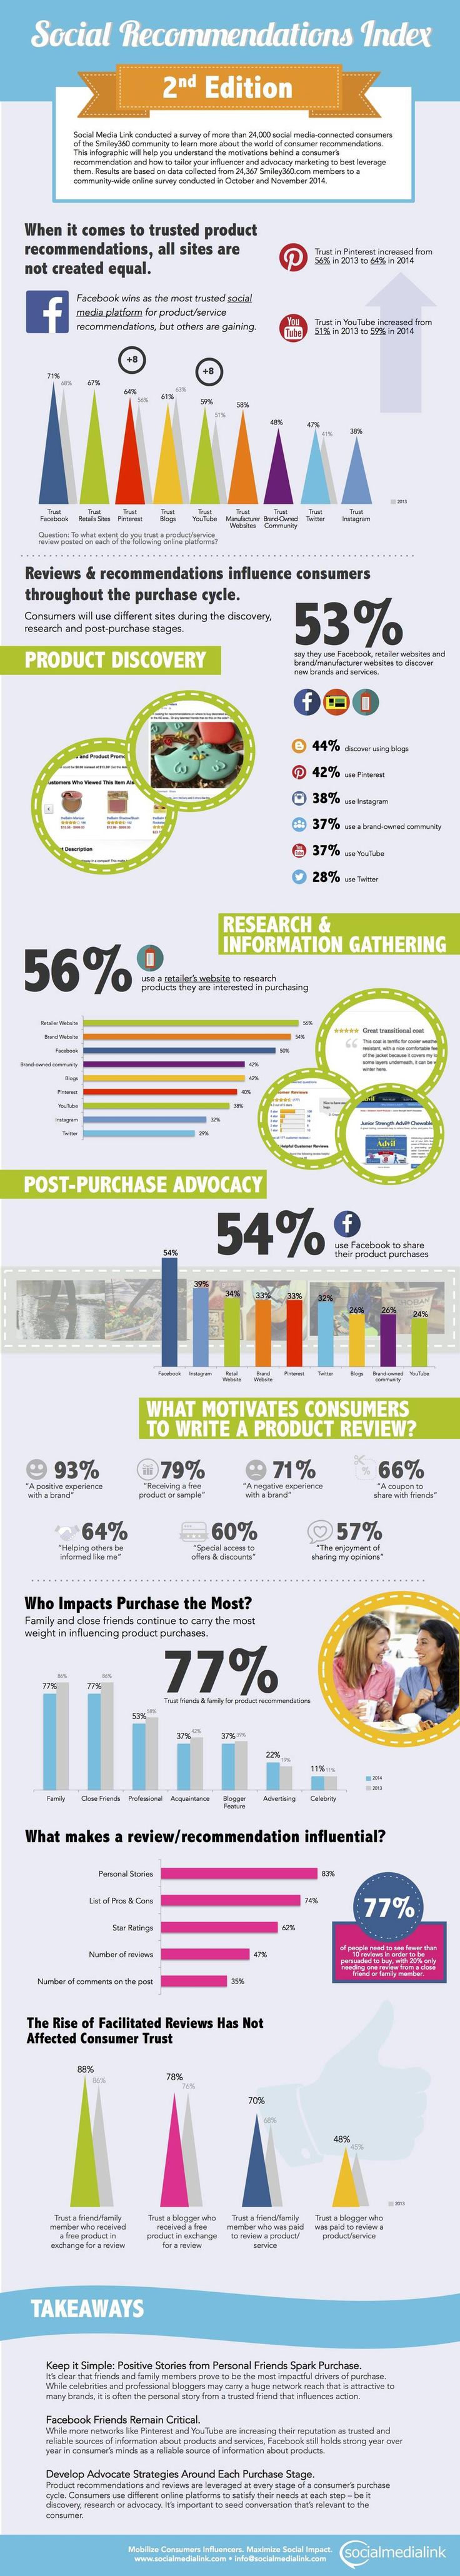 Social Media Reviews Rate High in Consumer Trust [Infographic]